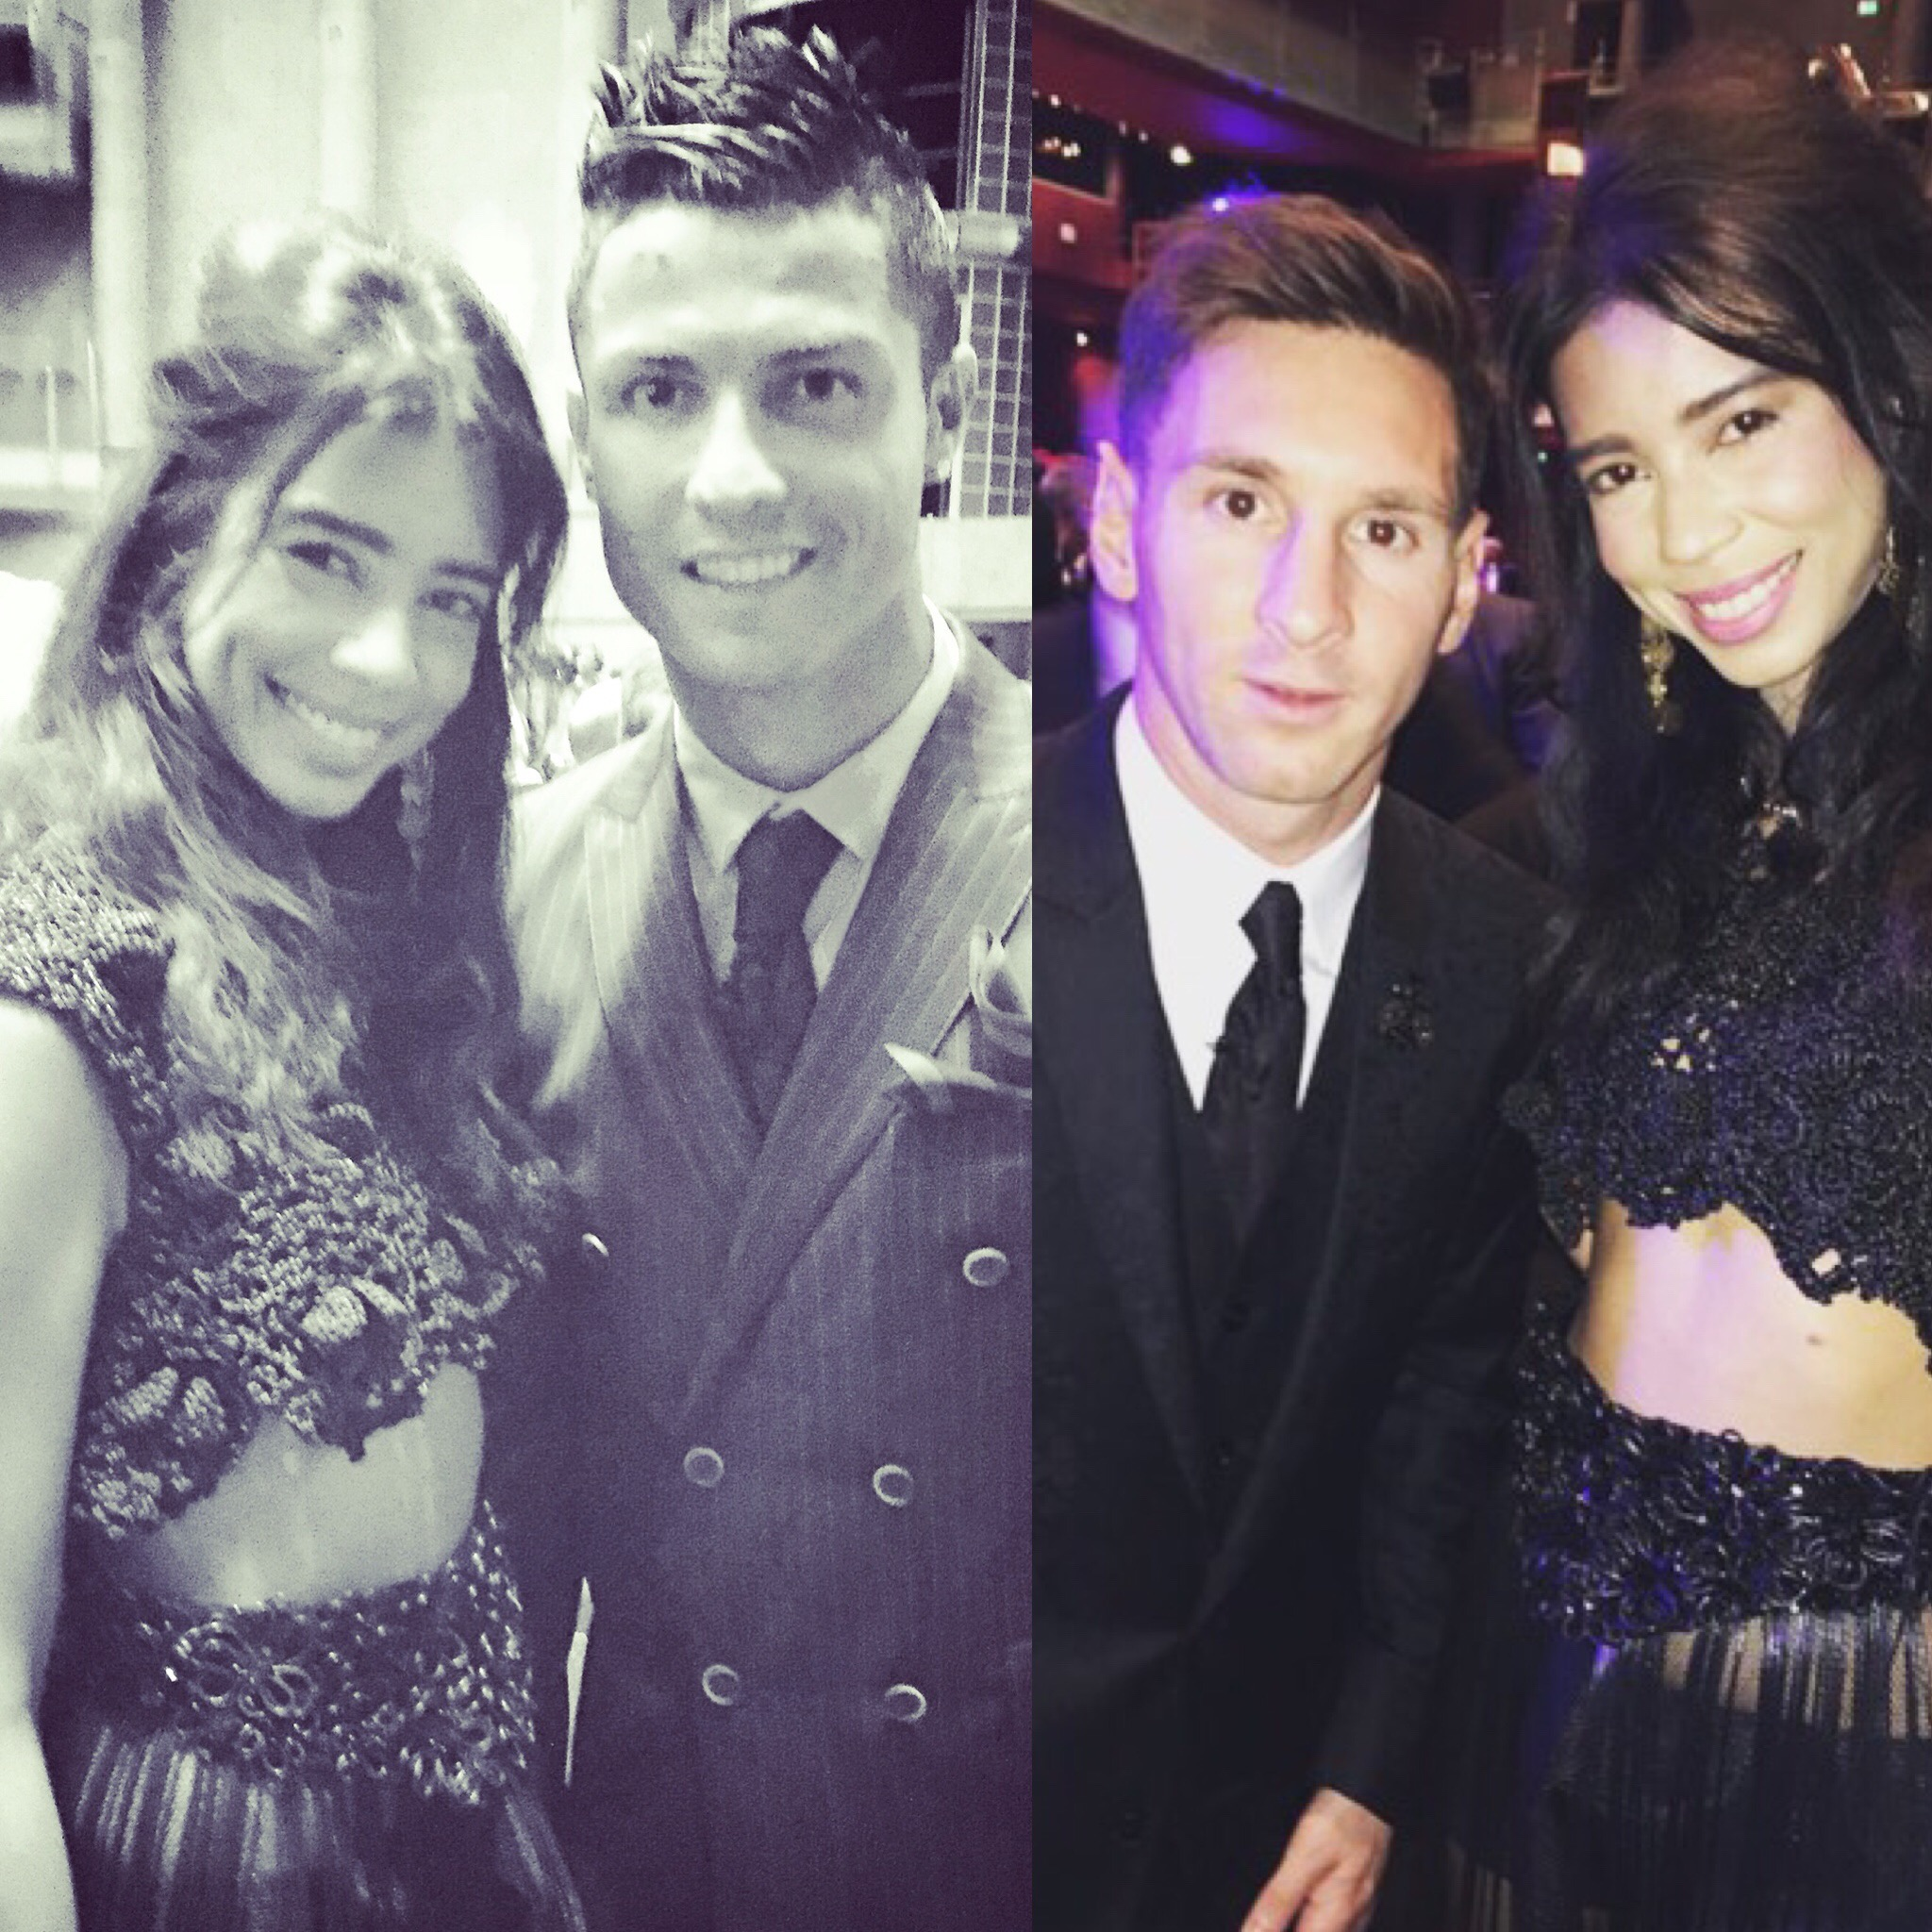 Cristiano Ronaldo I M Not Playing Just Lionel Messi: File:Vanessa Modely Cristiano Ronaldo Lionel Messi.jpg